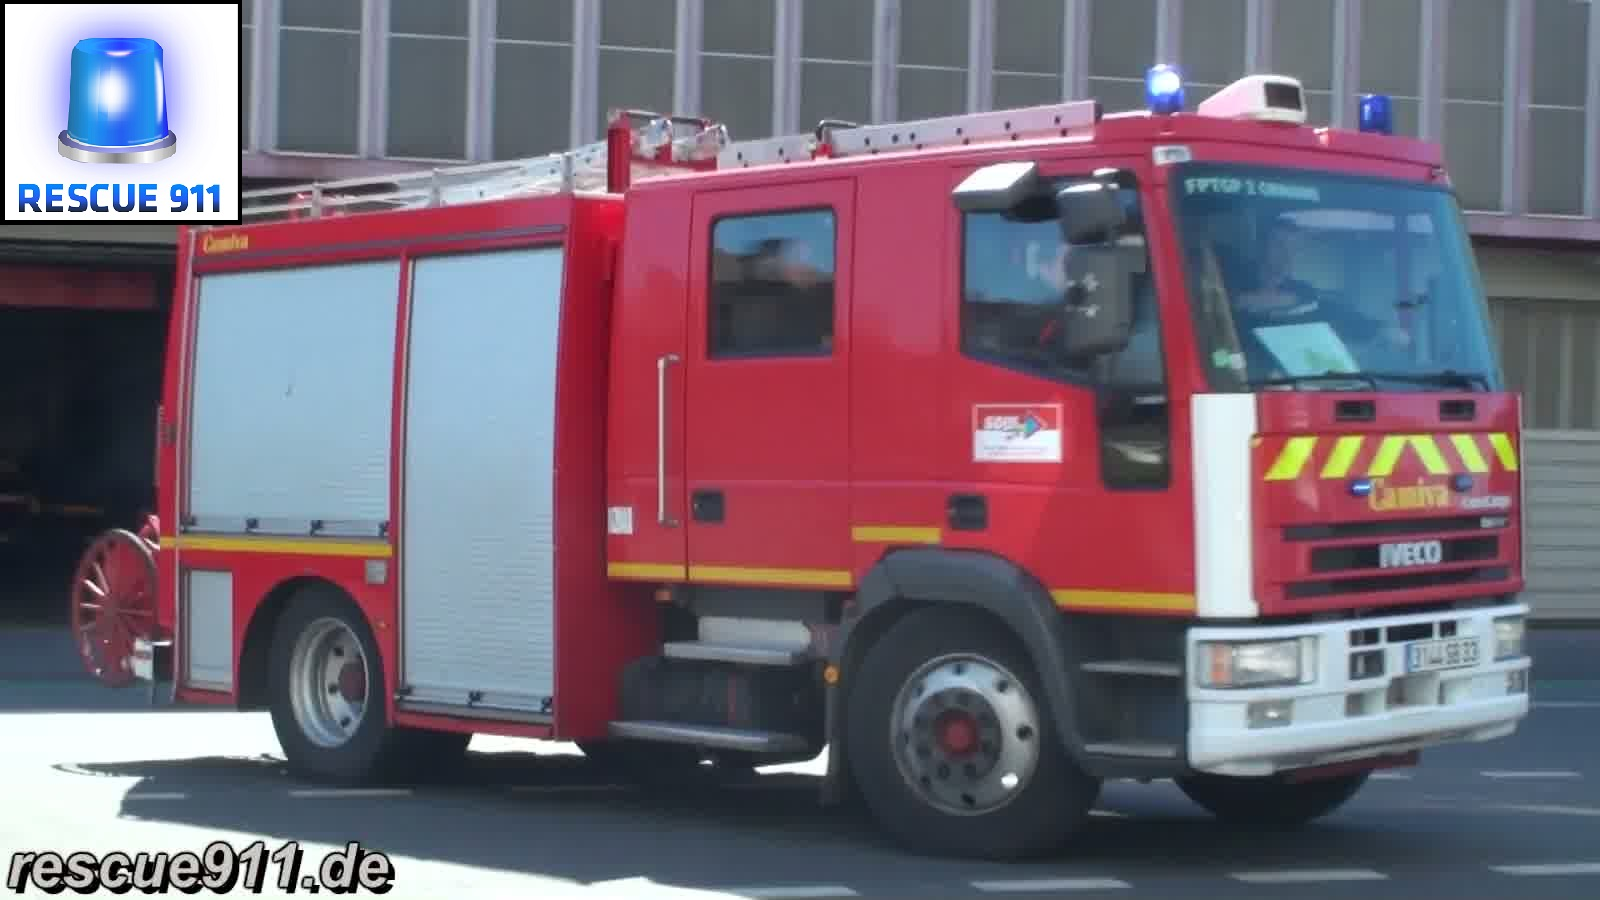 Sapeurs Pompiers de Bordeaux Ornano (collection) (stream)